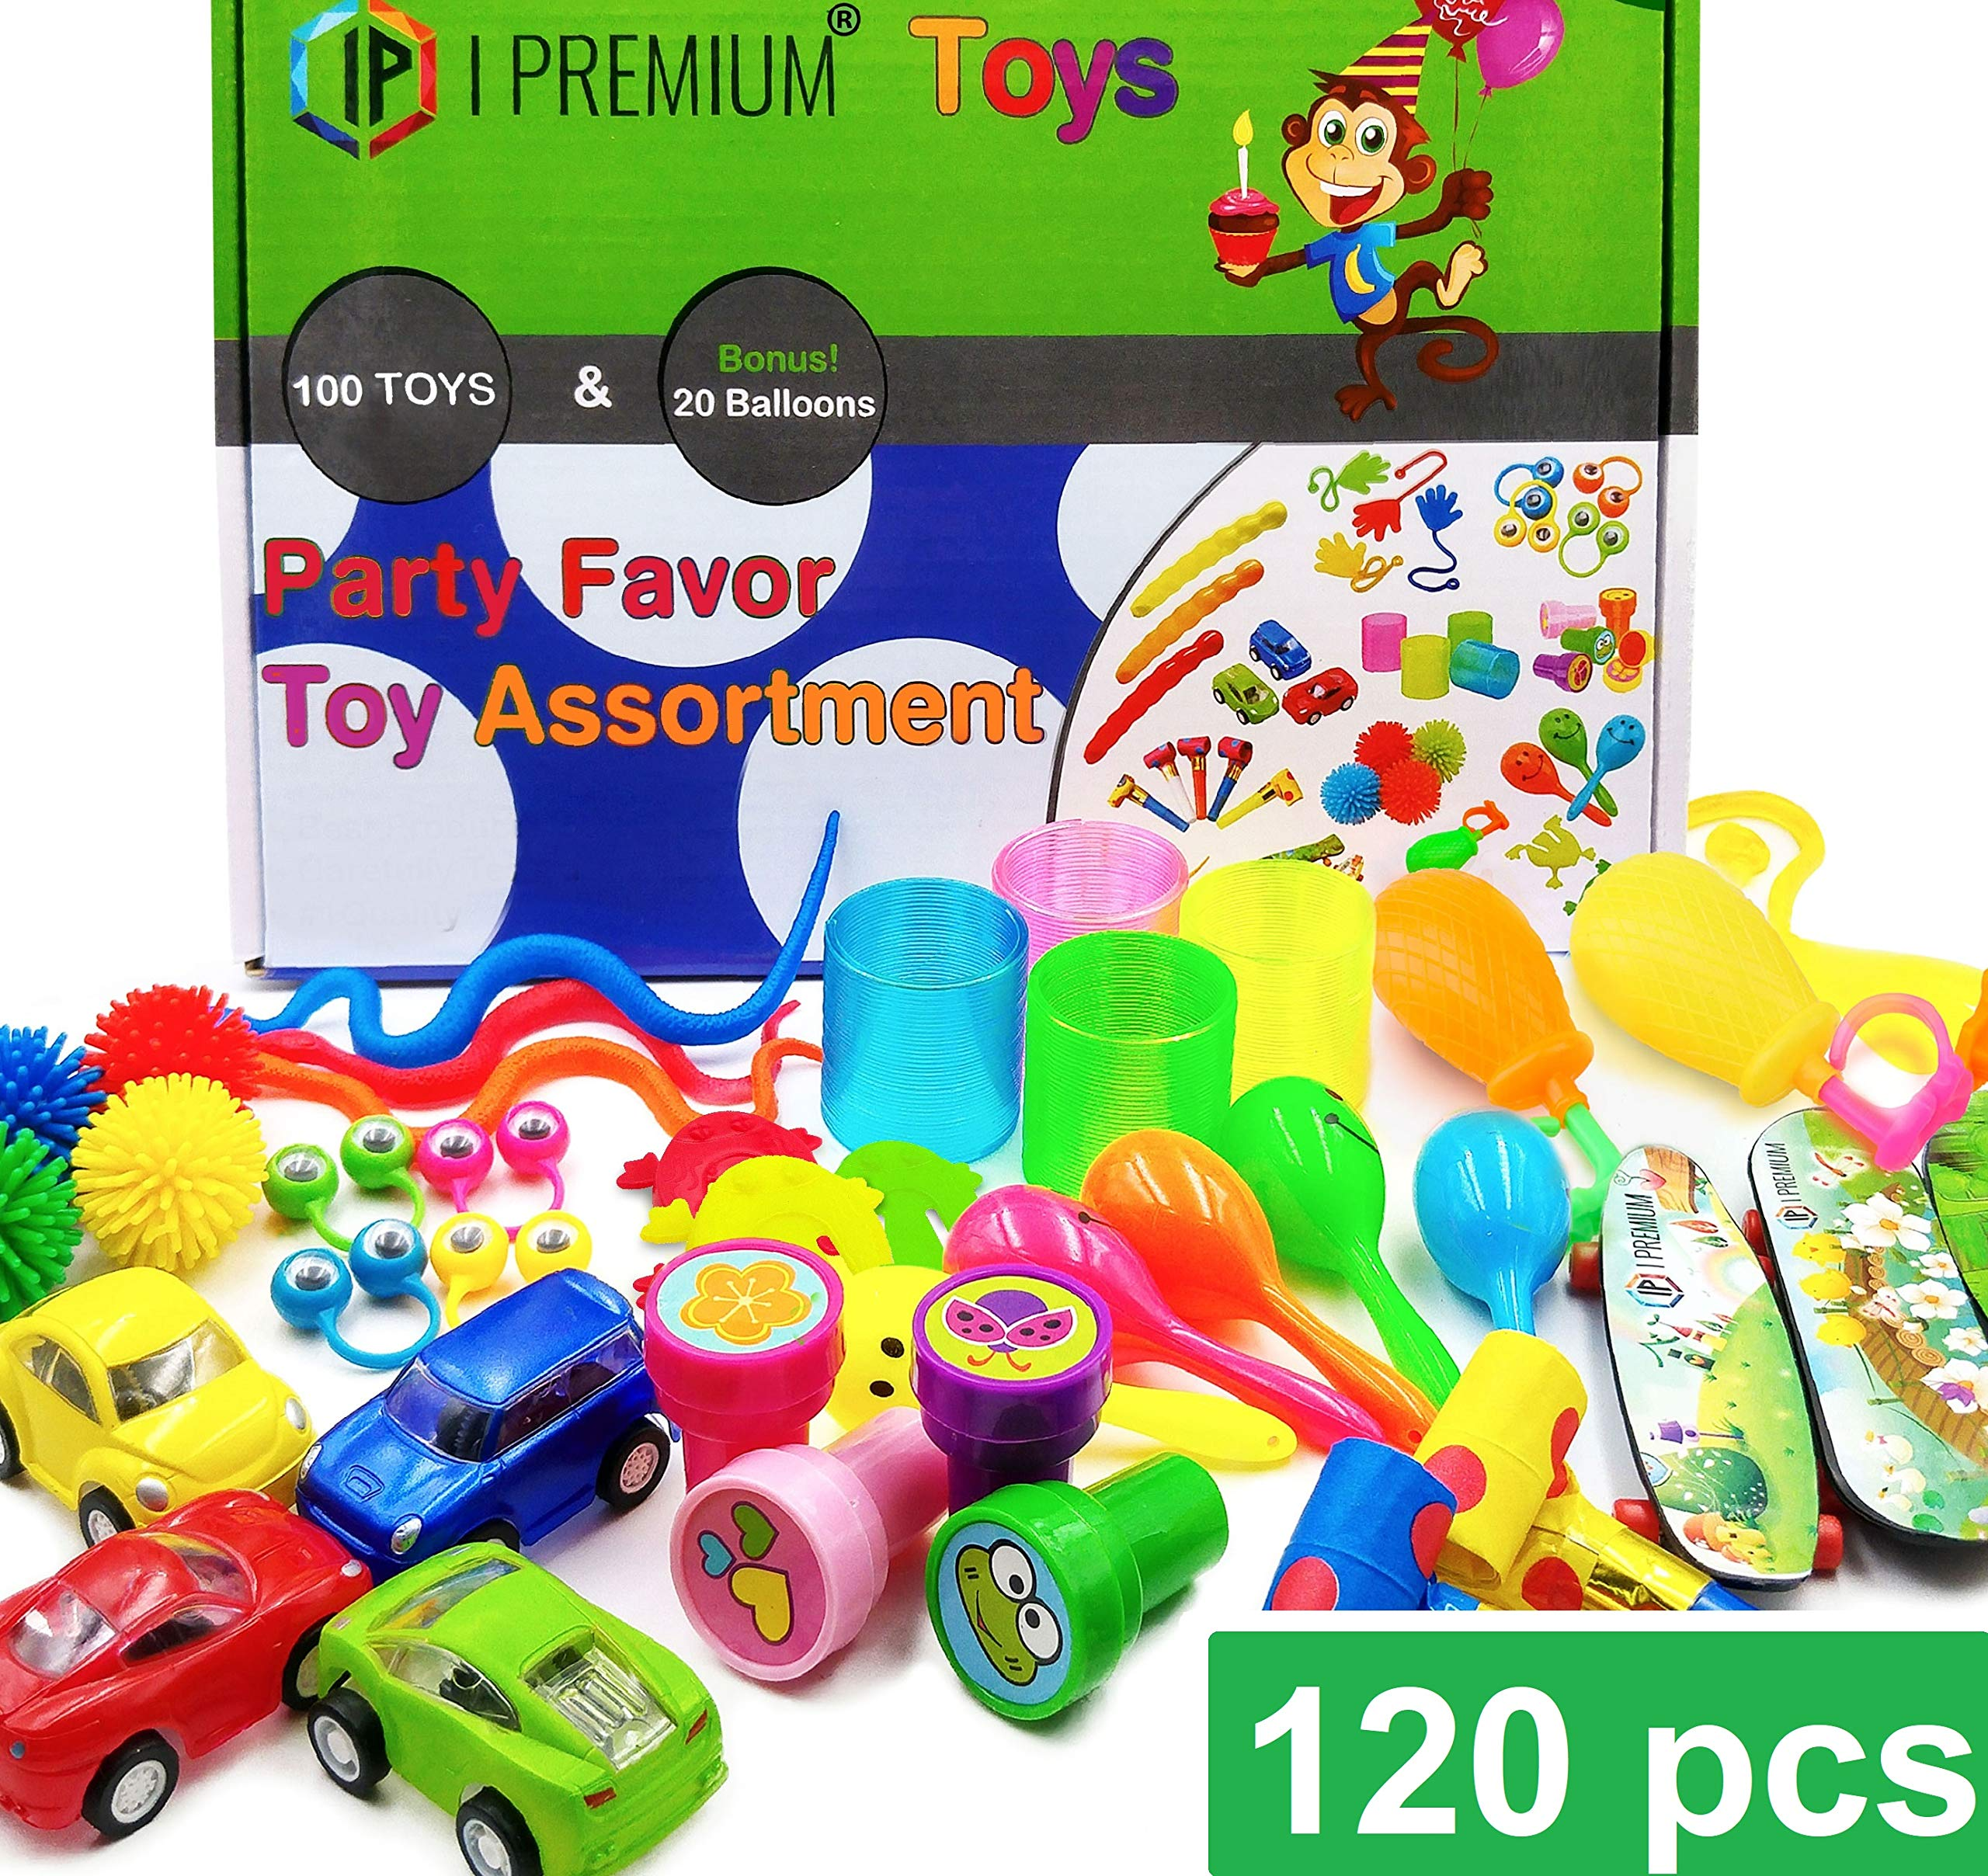 IP I Premium 120 Pcs Toy Assortment, Party Favors for Kids, Bulk Toys, Pinata Filler, Goodie Bag Fillers, Treasure Box, Prizes for Classroom, Halloween, Carnival and Birthday. for Boys and Girls by IP I Premium